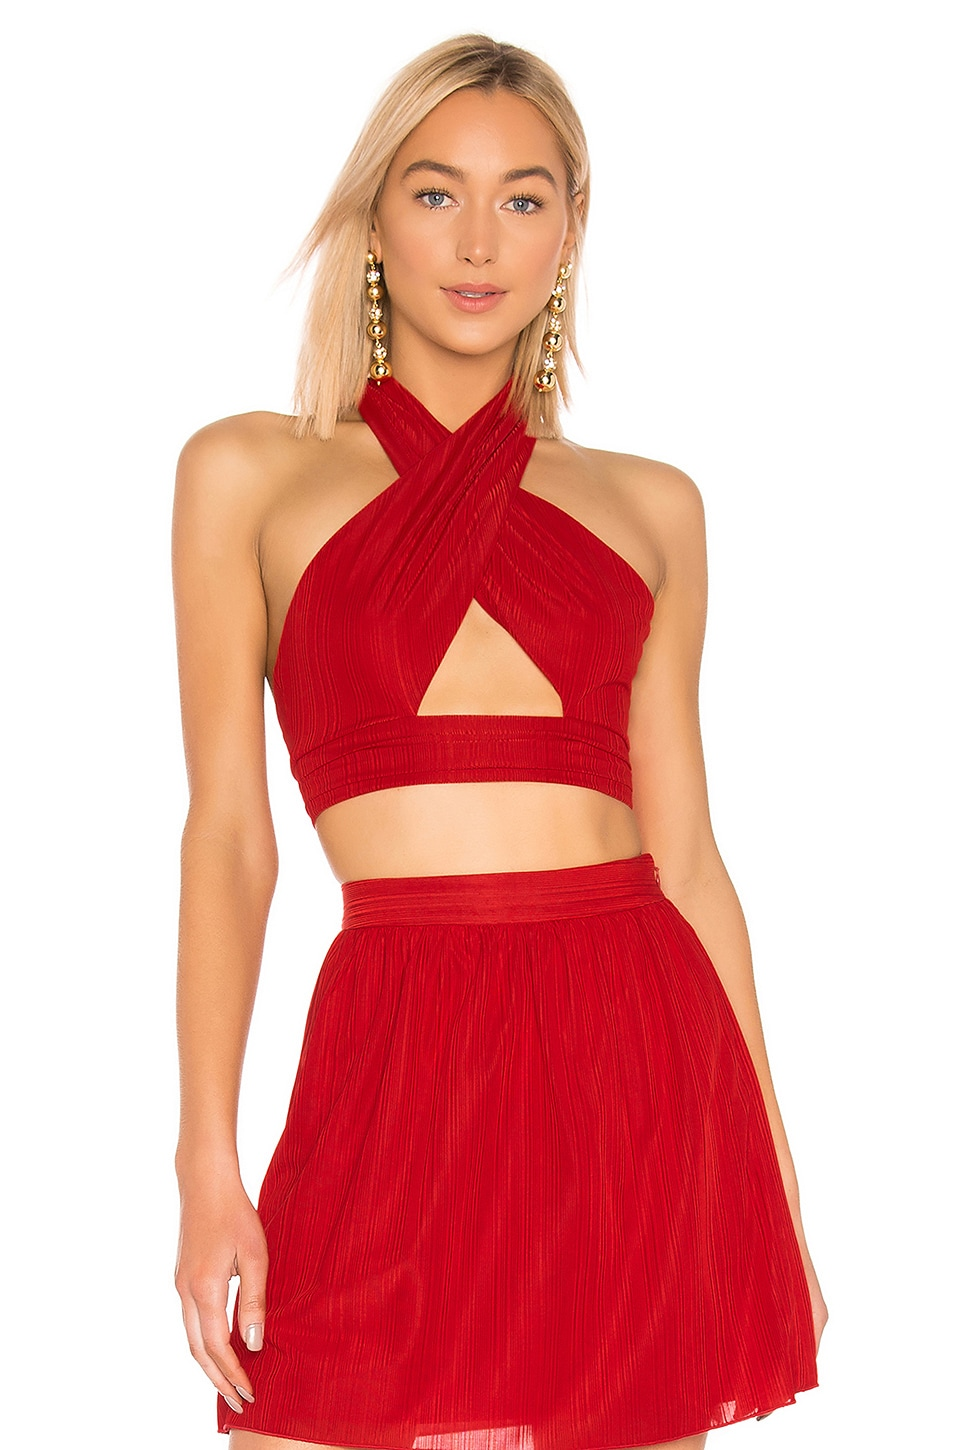 House of Harlow 1960 X REVOLVE Jules Top in Red